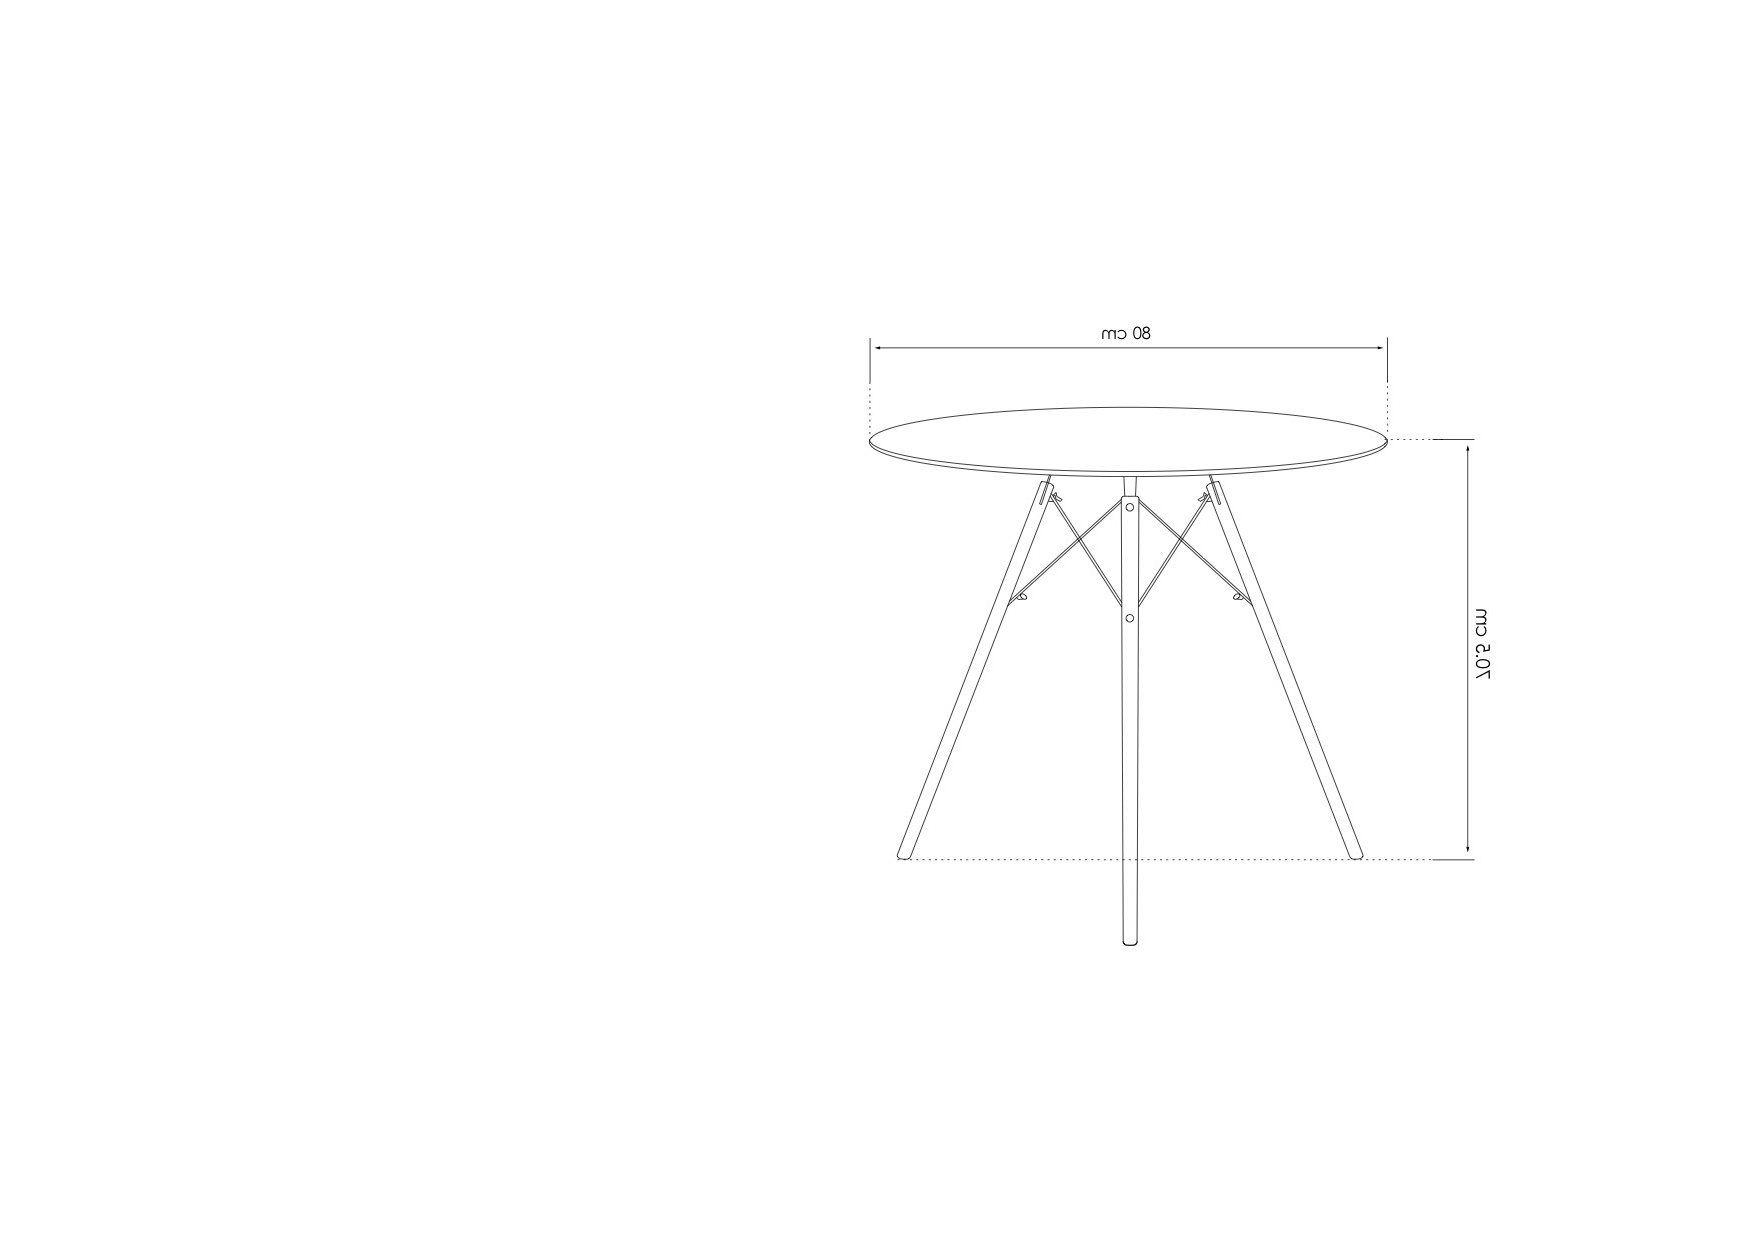 Eames Style Dining Tables With Chromed Leg And Tempered Glass Top Within 2017 Dining Tables Size: 80Cm Fusionwell Dsw Style Dining Round (View 9 of 30)